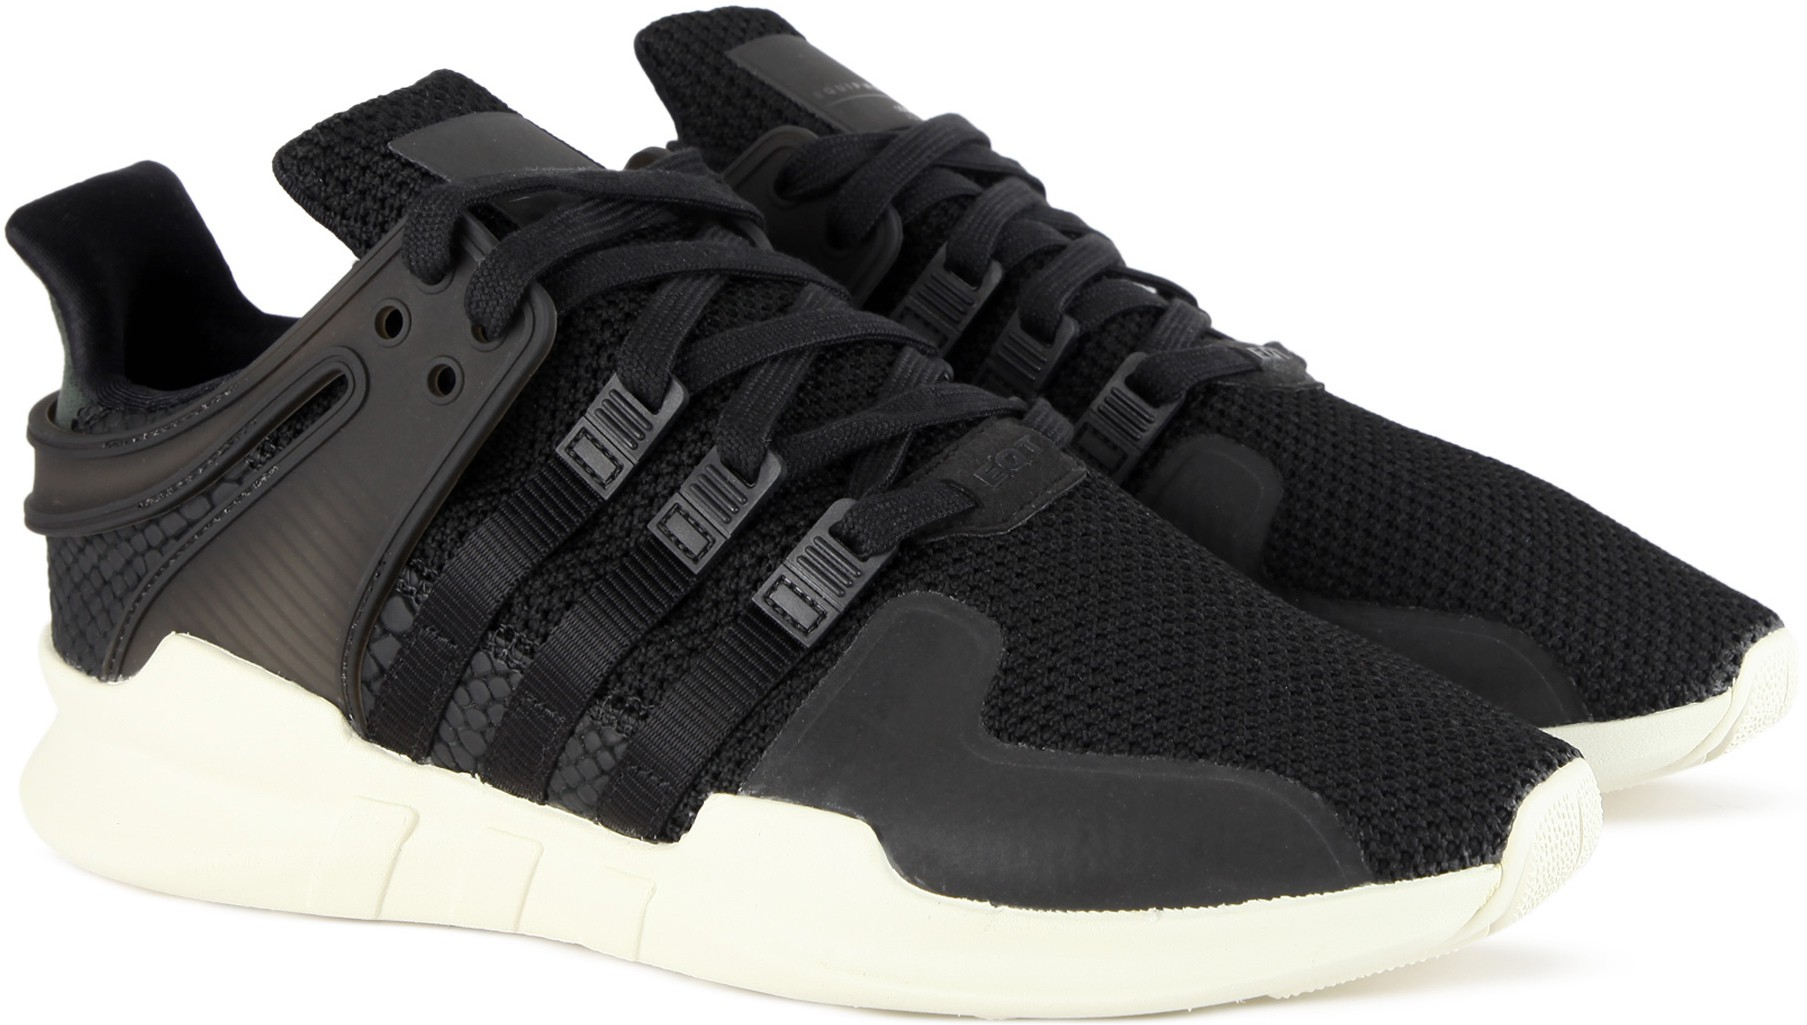 4c20f09b197f ADIDAS ORIGINALS EQT SUPPORT ADV Sneakers For Men(Black) thumbnail